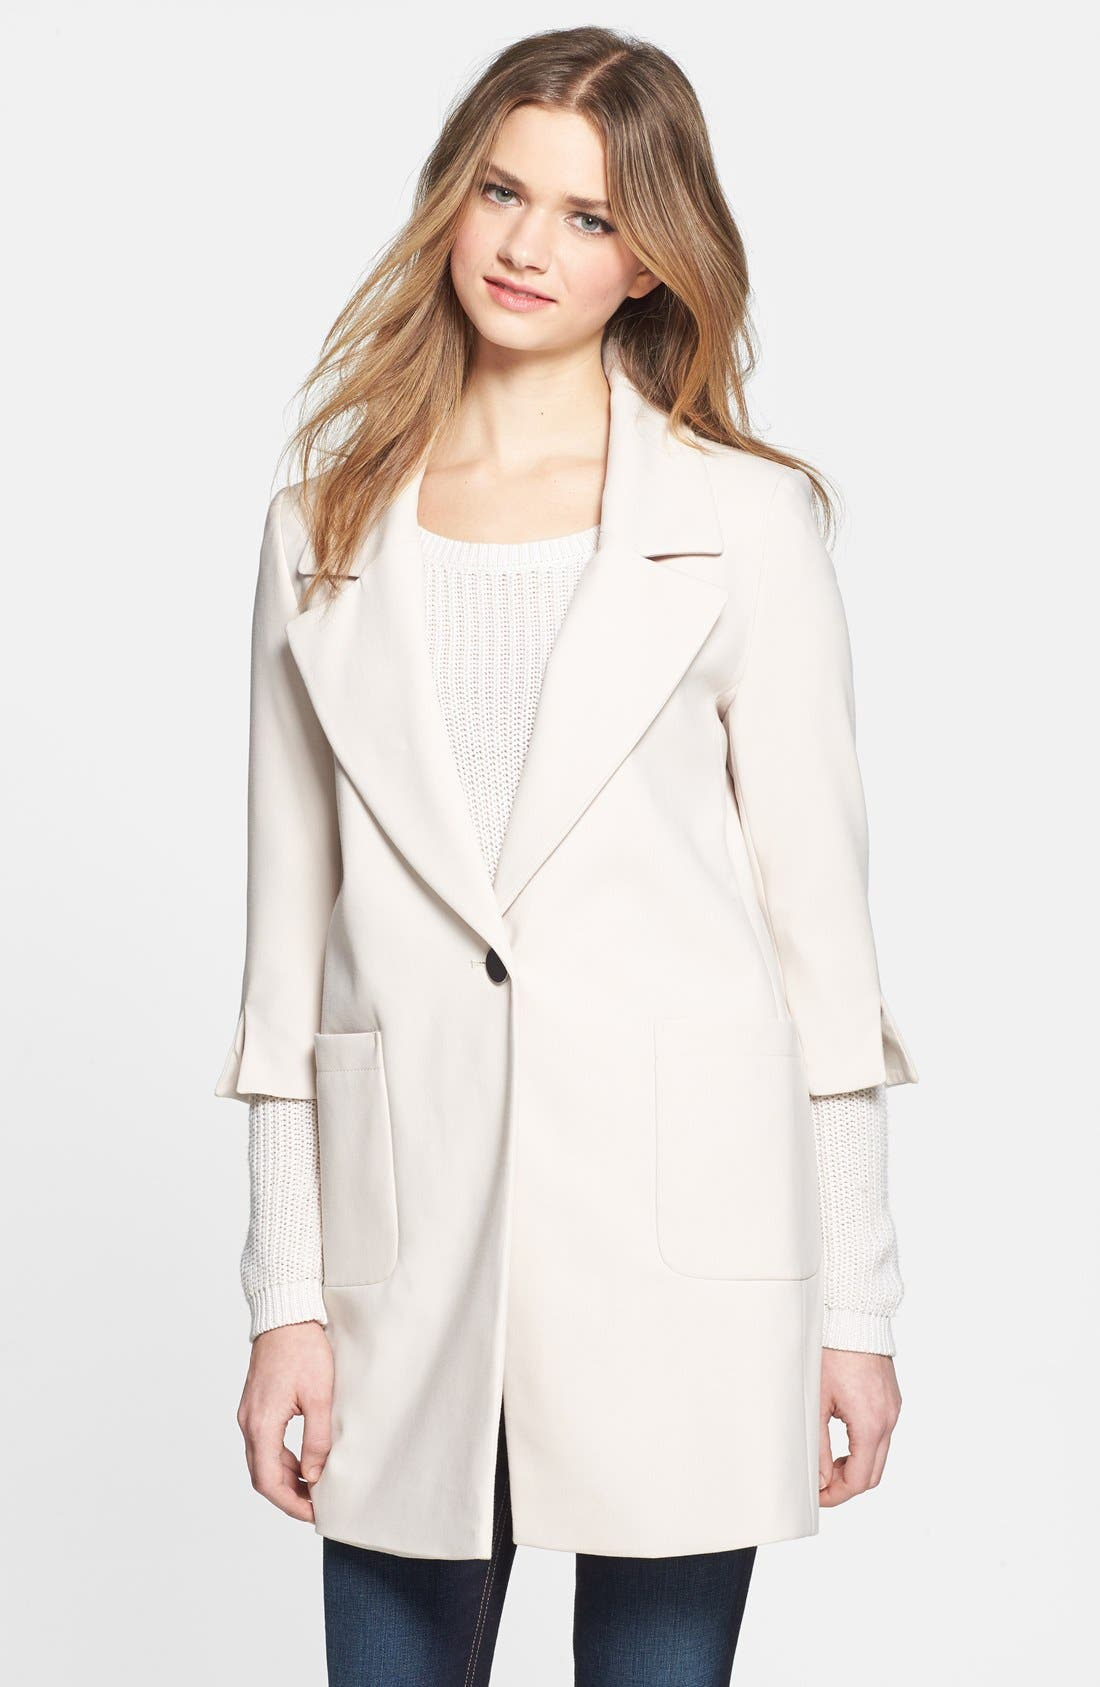 Alternate Image 1 Selected - Elie Tahari 'Jasmine' Boyfriend Blazer-Style Topper